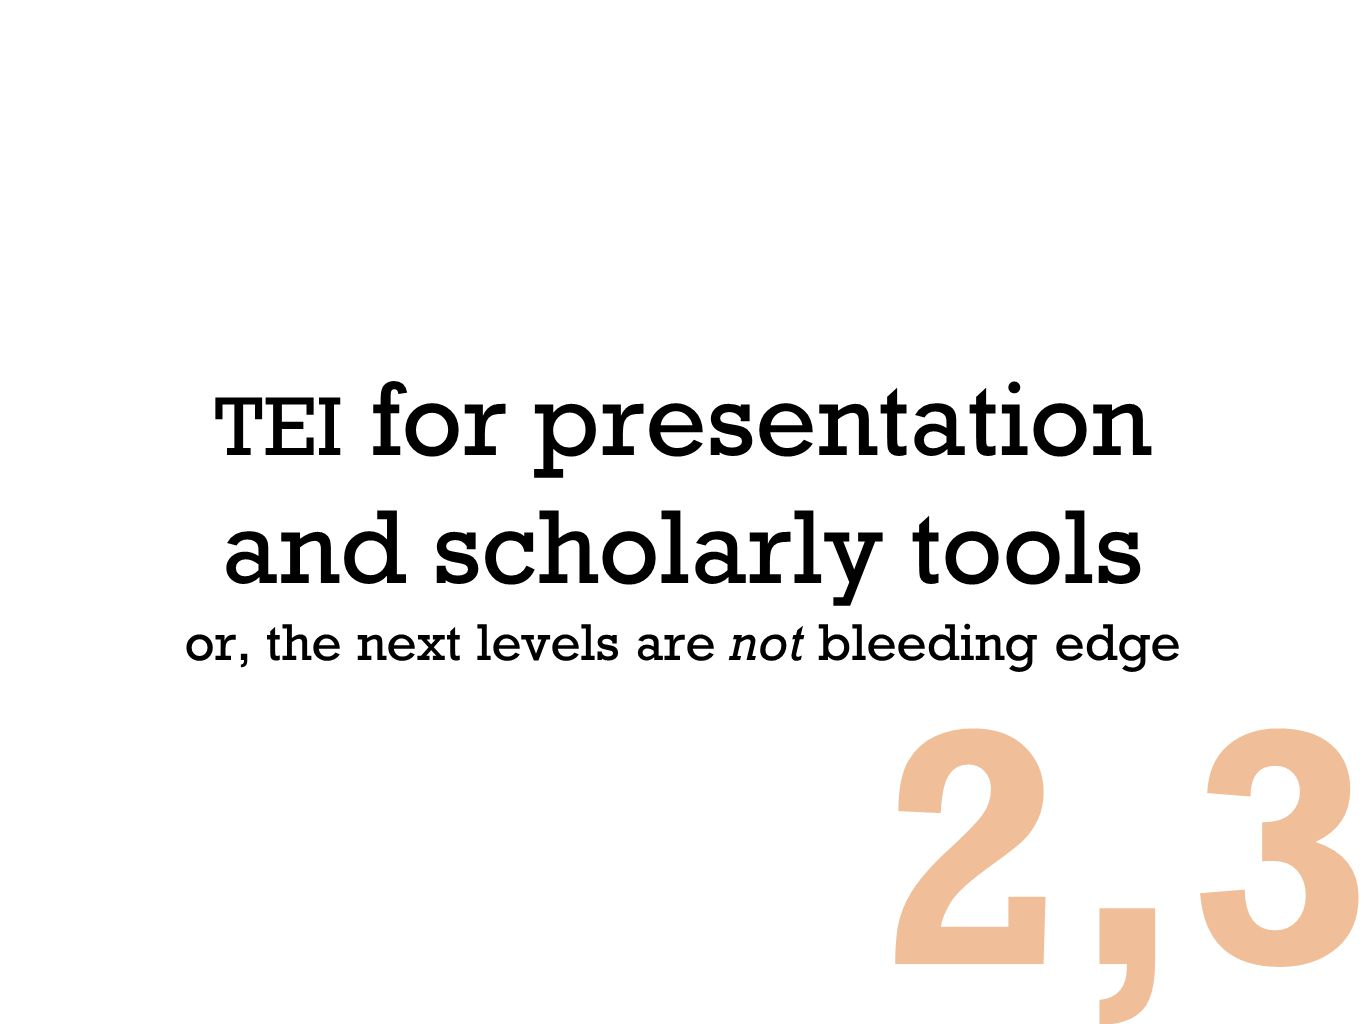 TEI for presentation and scholarly tools or, the next levels are not bleeding edge 2,3